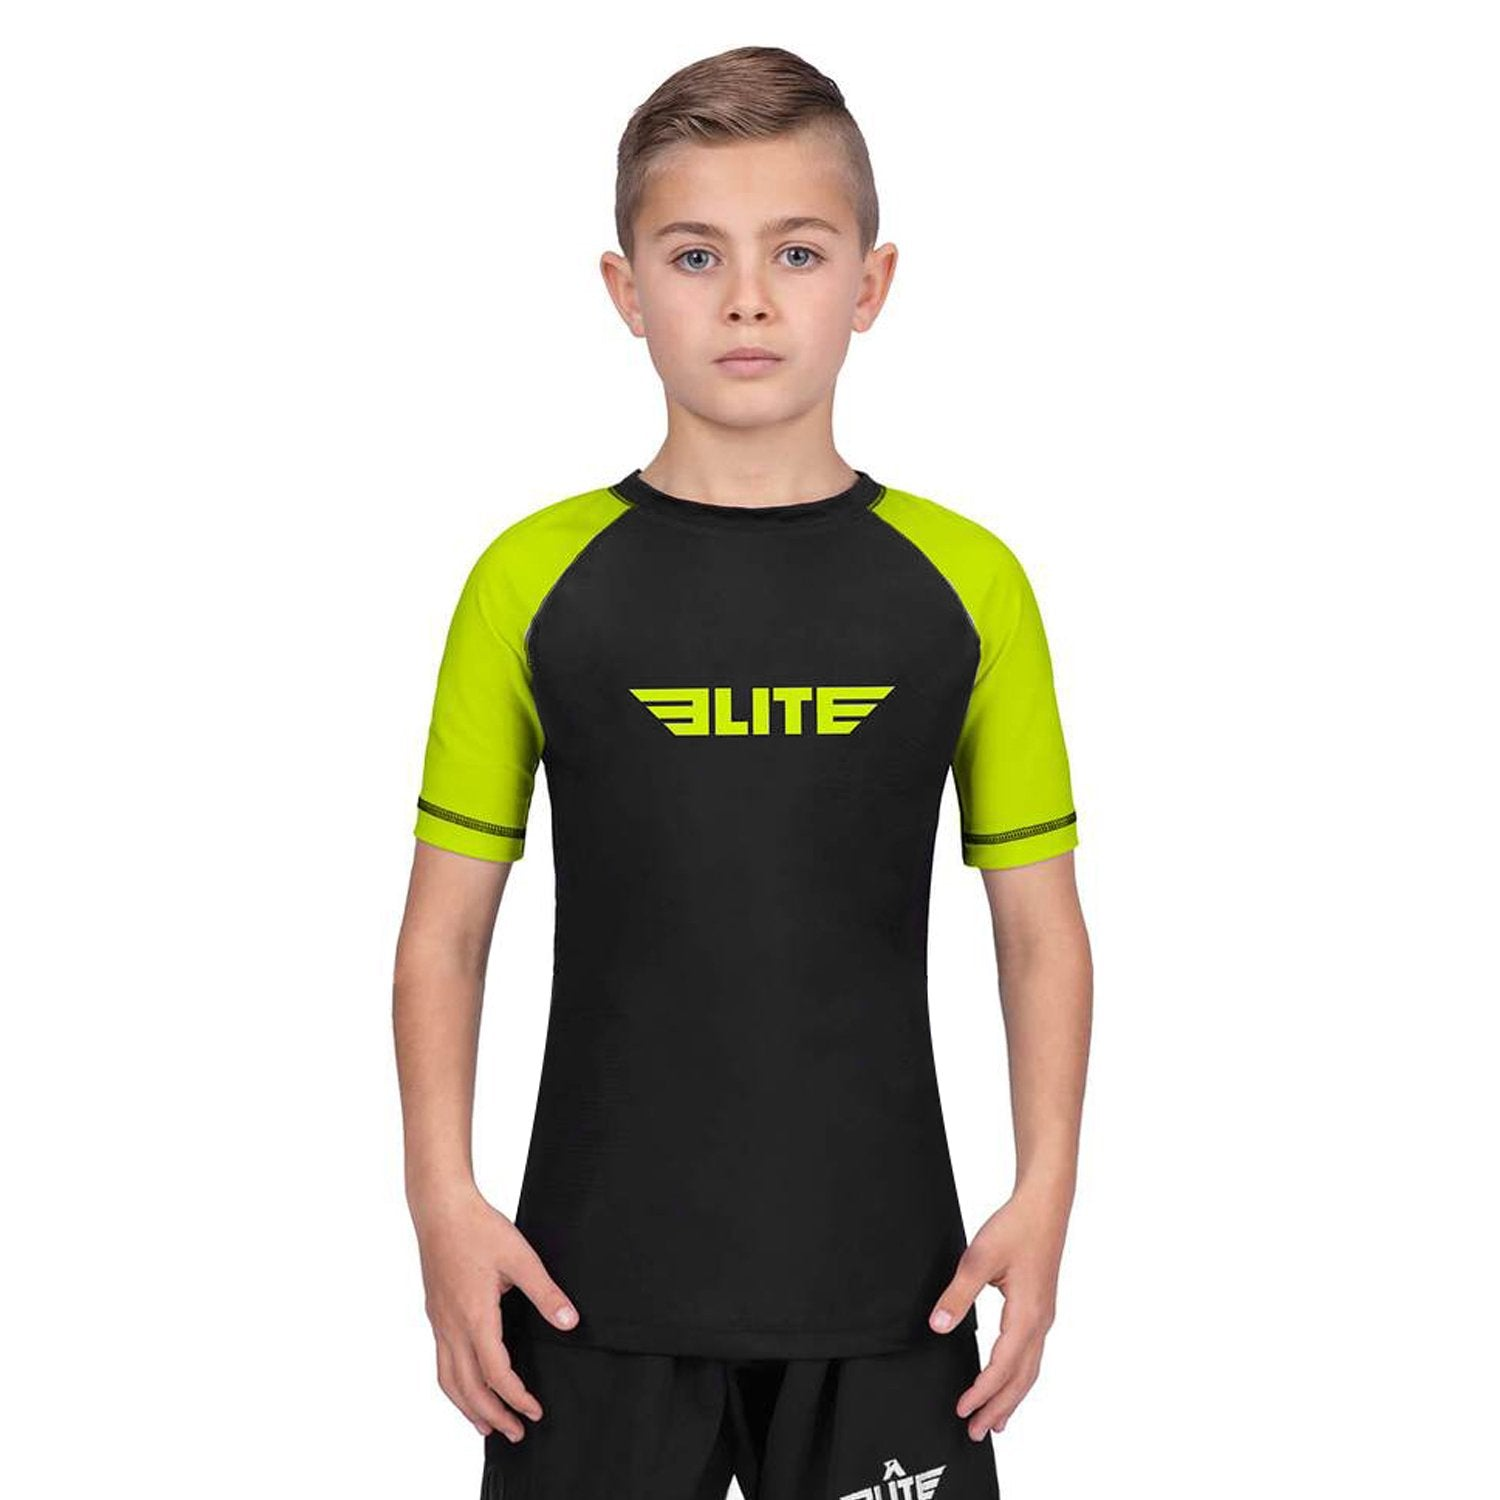 Elite Sports Standard Hi-Viz/Black Short Sleeve Kids Training Rash Guard